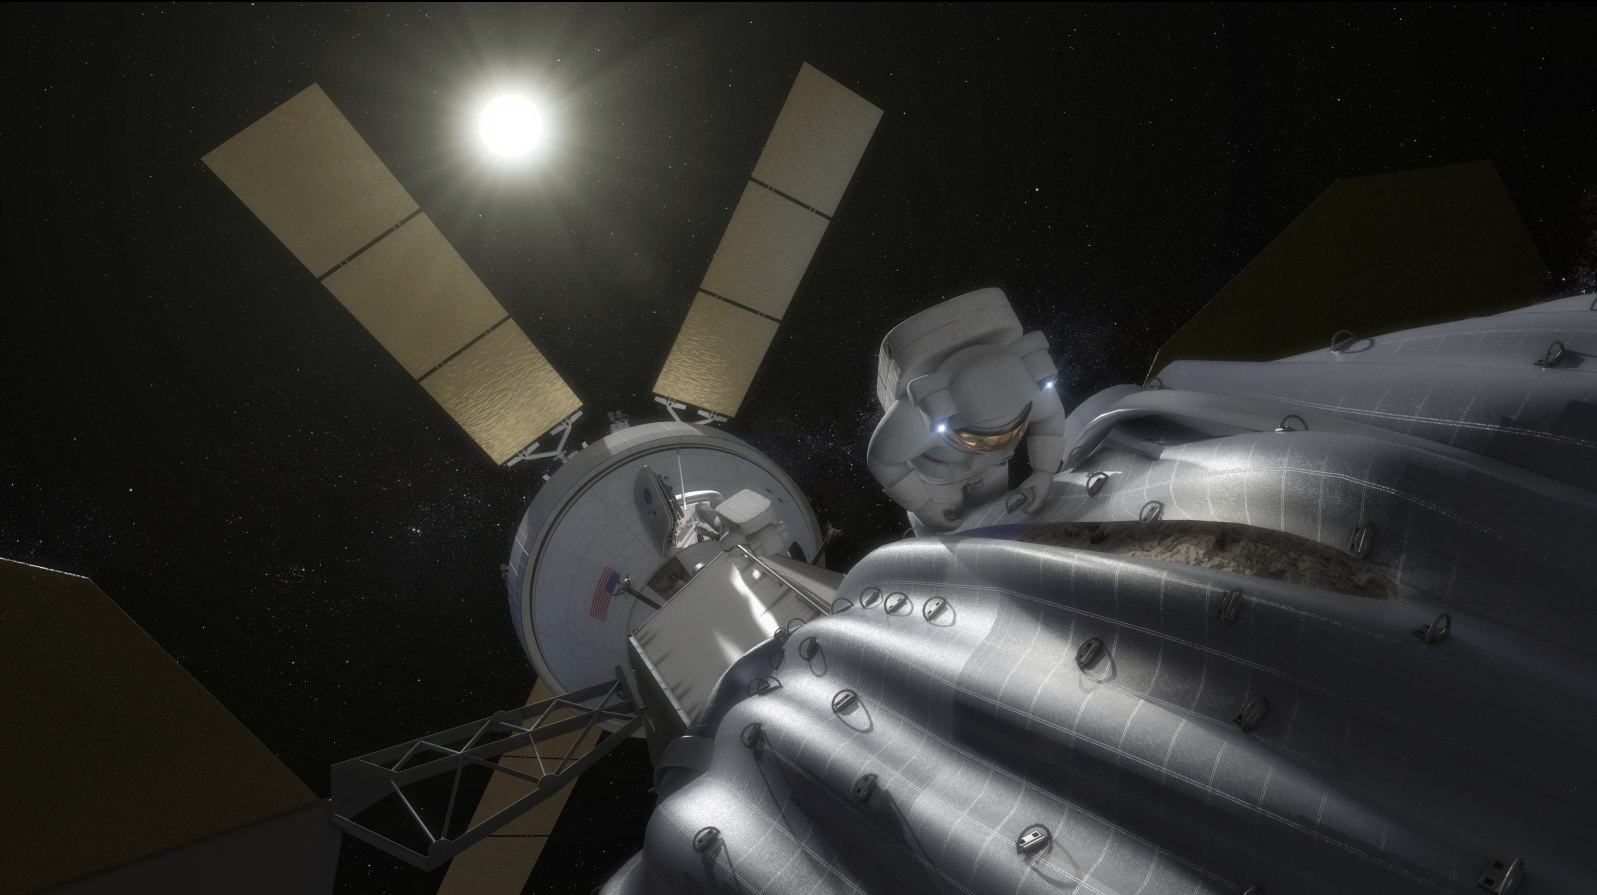 NASA Seeks Targets For Asteroid-Capture Mission